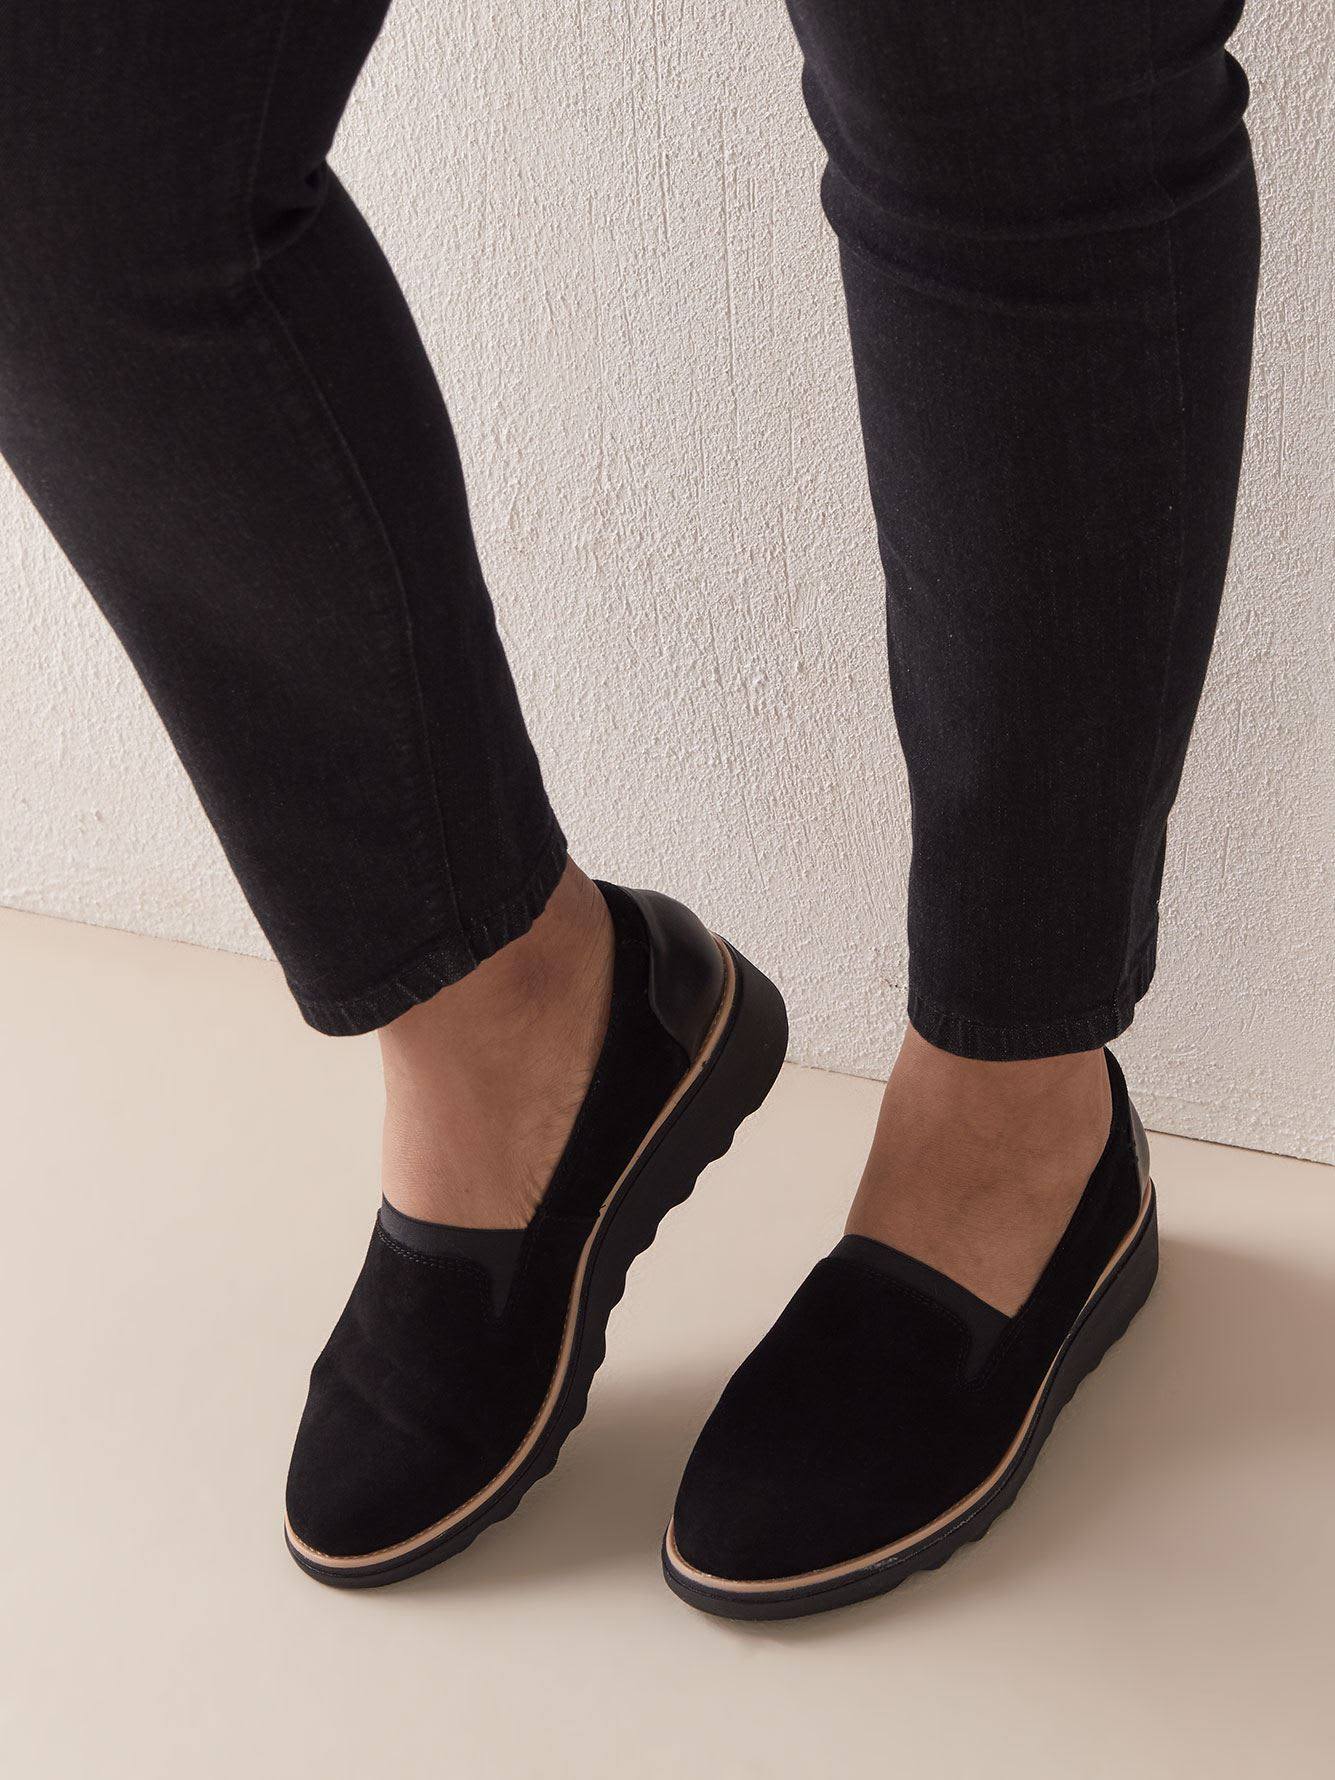 world-wide renown how to get colours and striking Wide Sharon Dolly Slip On Wedge Shoes - Clarks